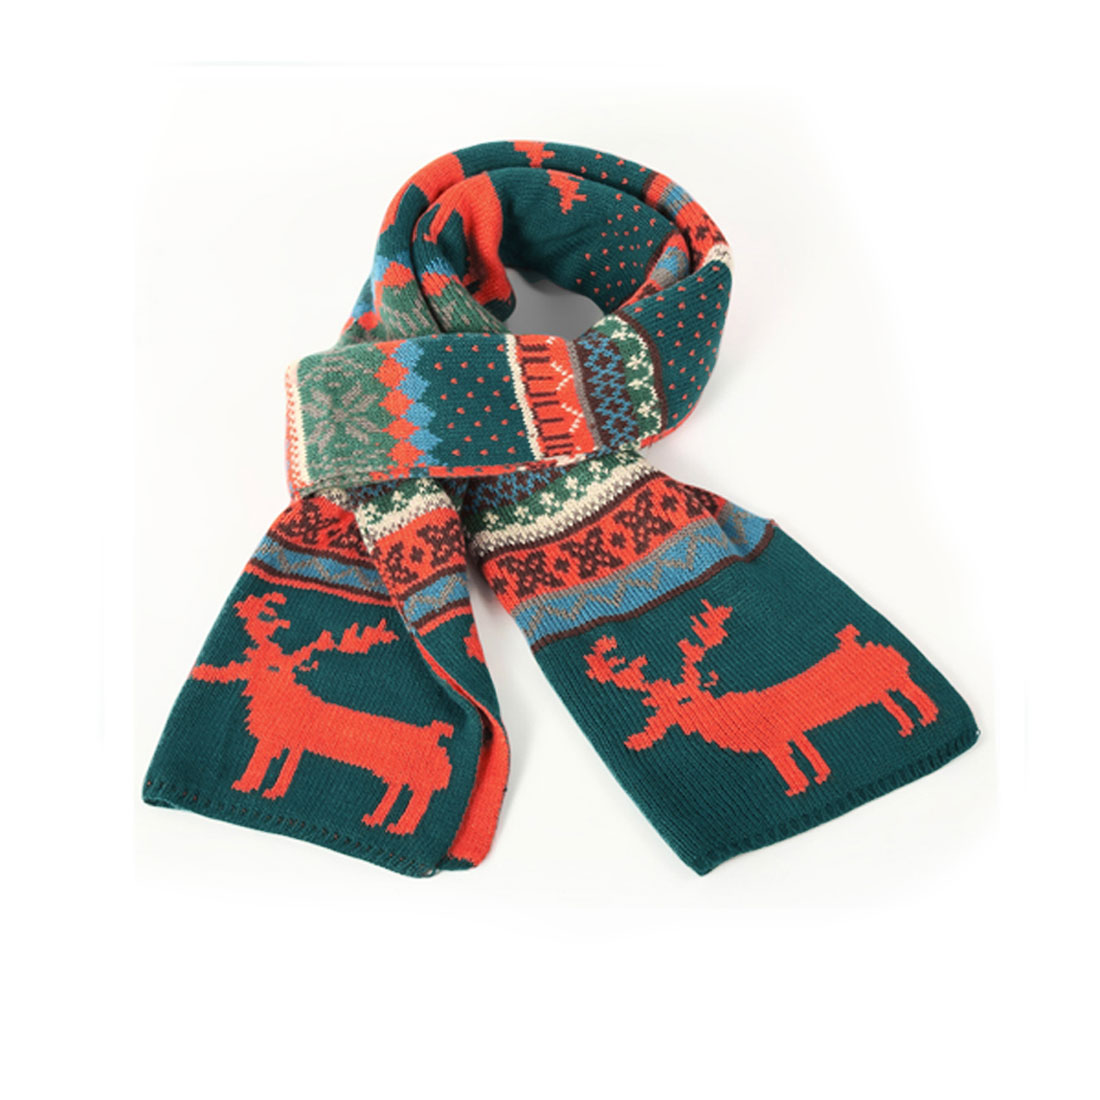 Mens New Fashion Multicolor Deer Pattern Xmas Textured Knit Scarf